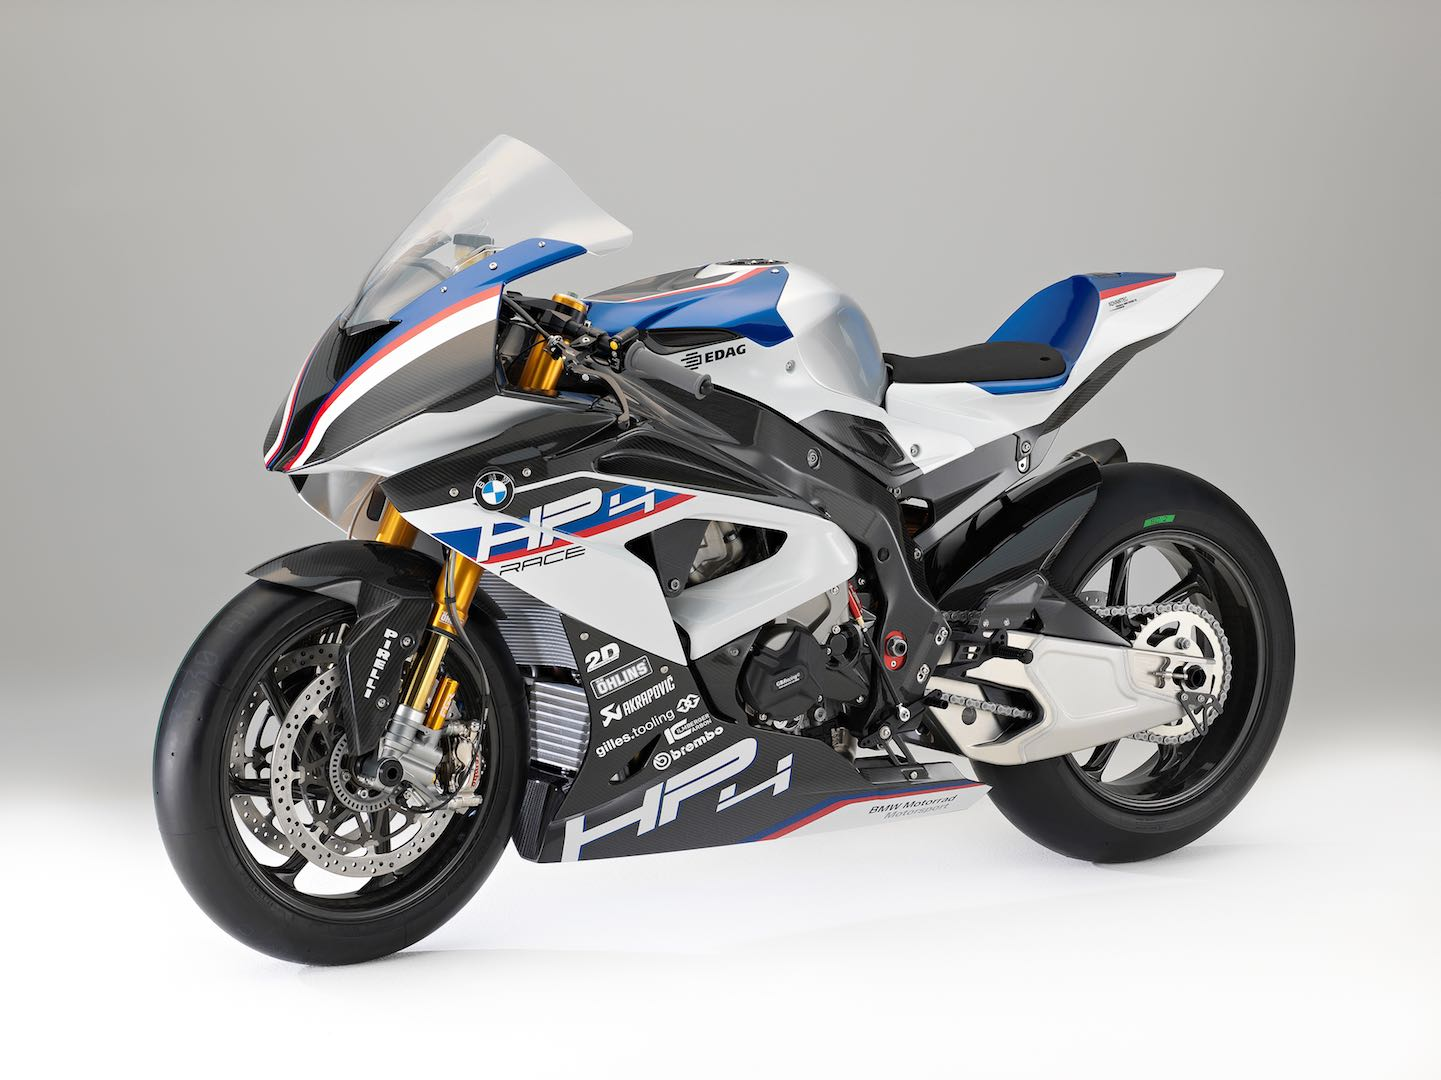 BMW HP4 RACE Specs Unveiled 215 HP, 377 lbs (+ video)